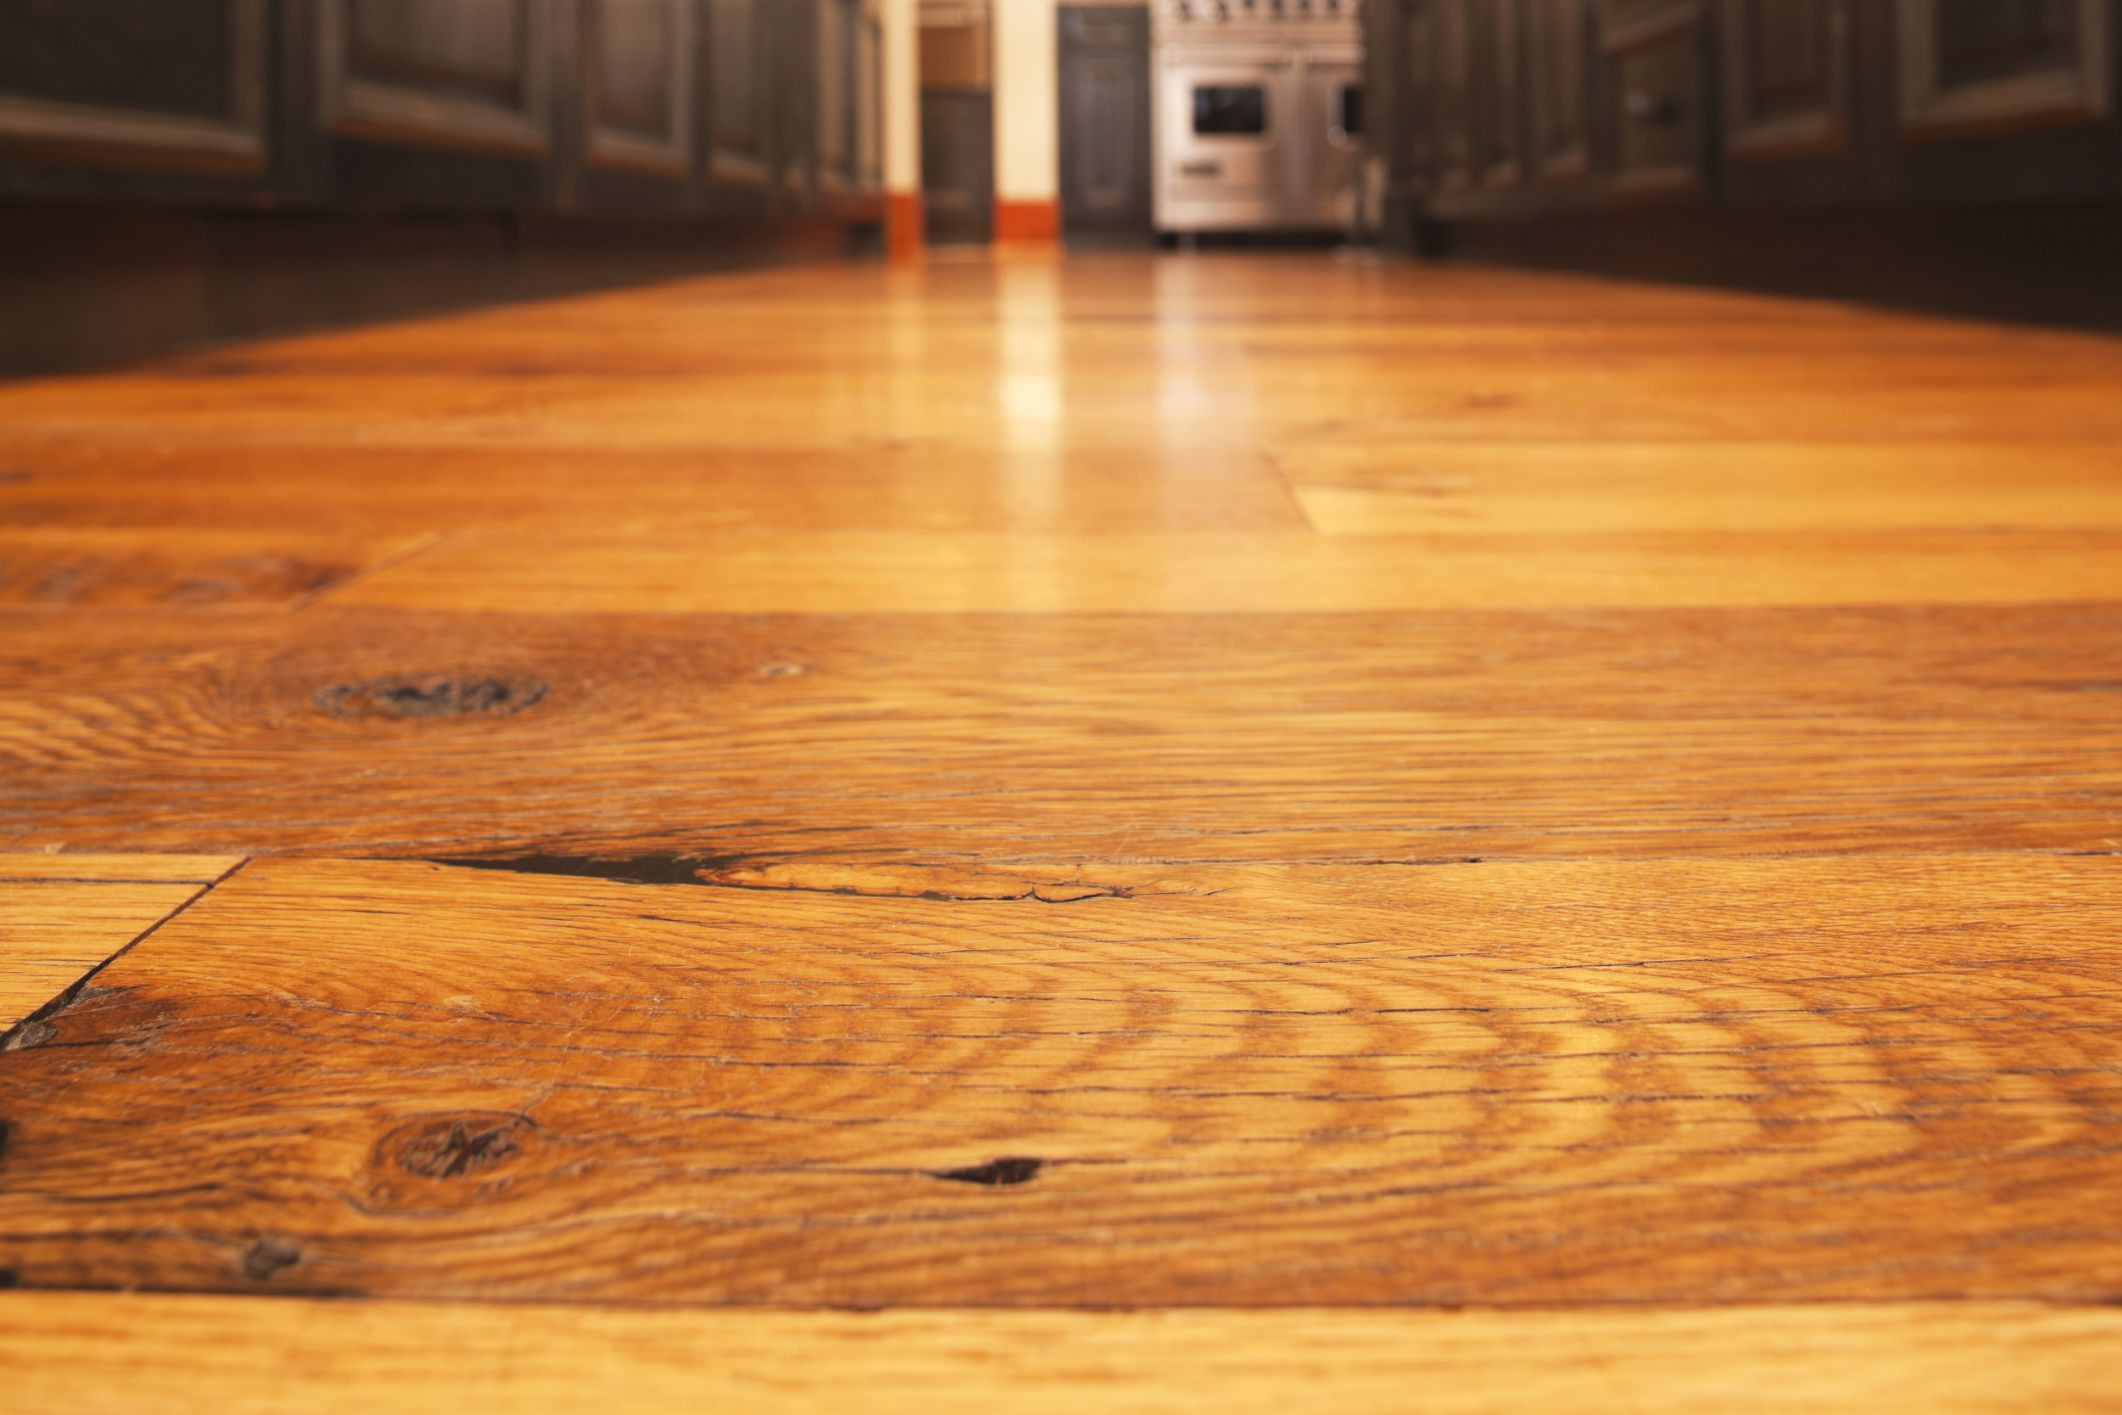 how to close gaps in hardwood floors of why a microbevel is on your flooring in wood floor closeup microbevel 56a4a13f5f9b58b7d0d7e5f4